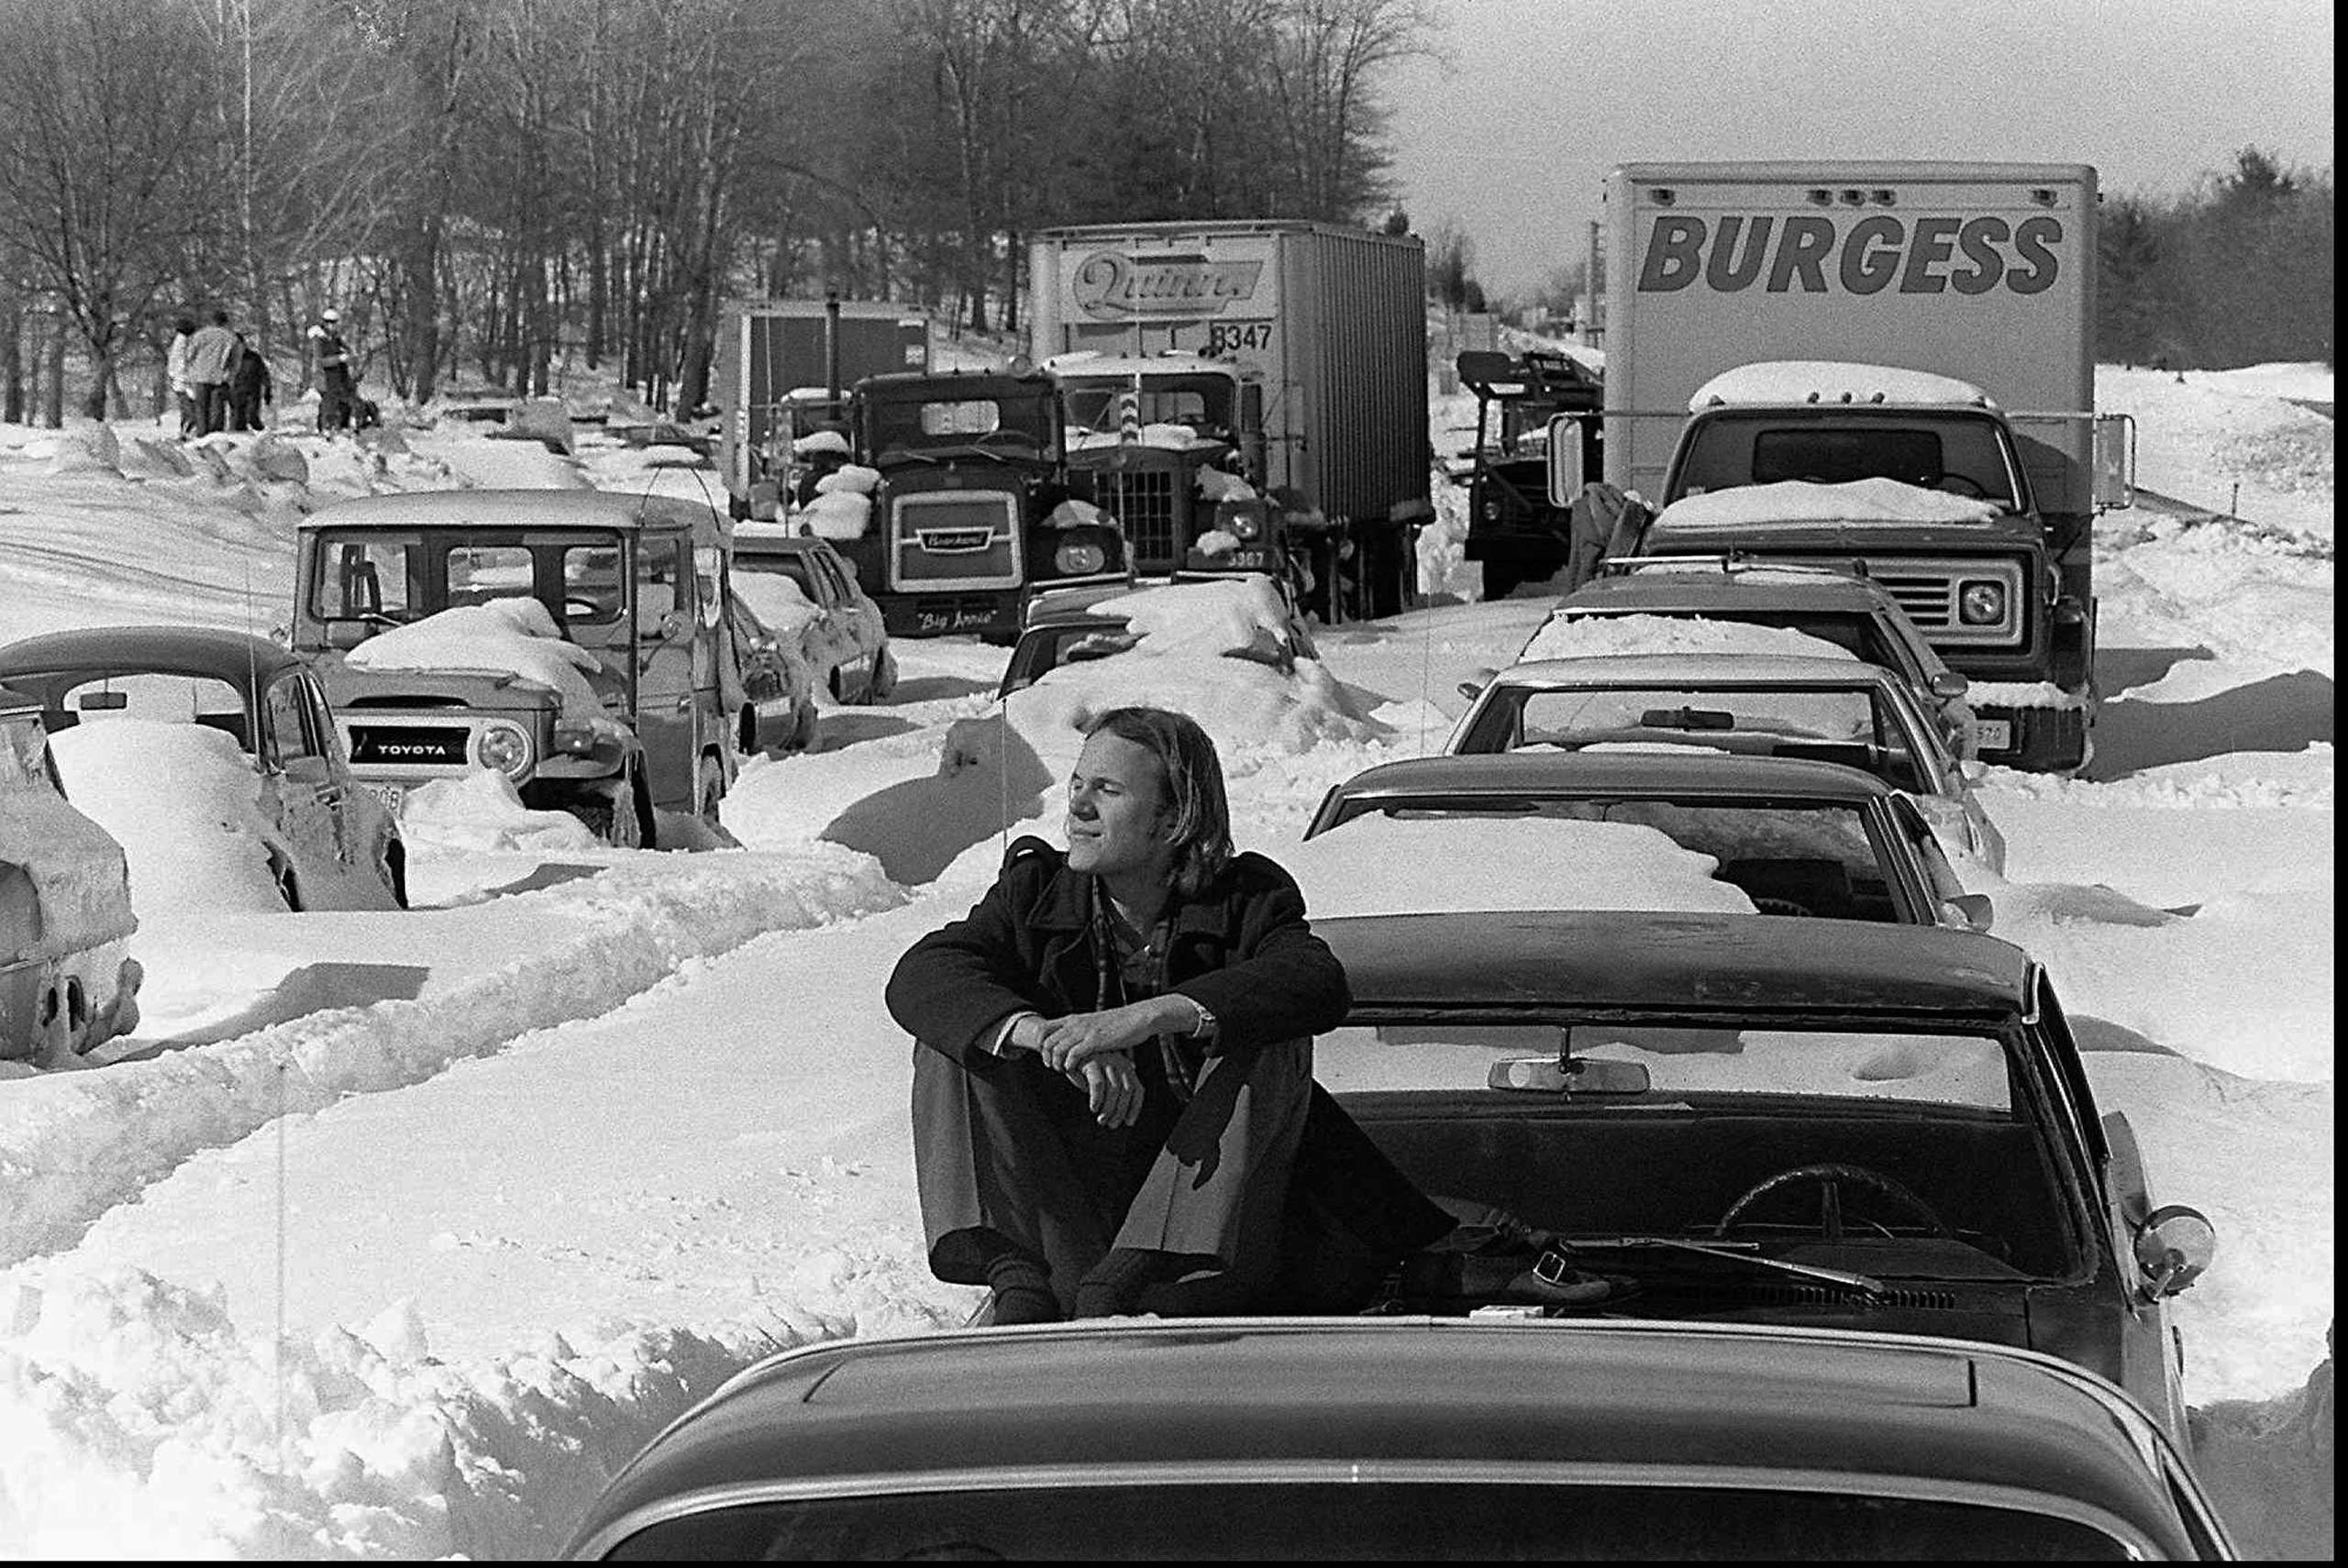 <b>The Blizzard of 1978 (Feb. 5-7 1978)</b> Hurricane-force winds, up to 90mph, and snow totals of up to 3 feet defined this blizzard. Here, Roy Sodersjerna of Higham, Mass. suns himself on the hood of his car, which is stuck in the snow on Massachusetts Route 128 in Dedham, Mass. on Feb. 9, 1978.